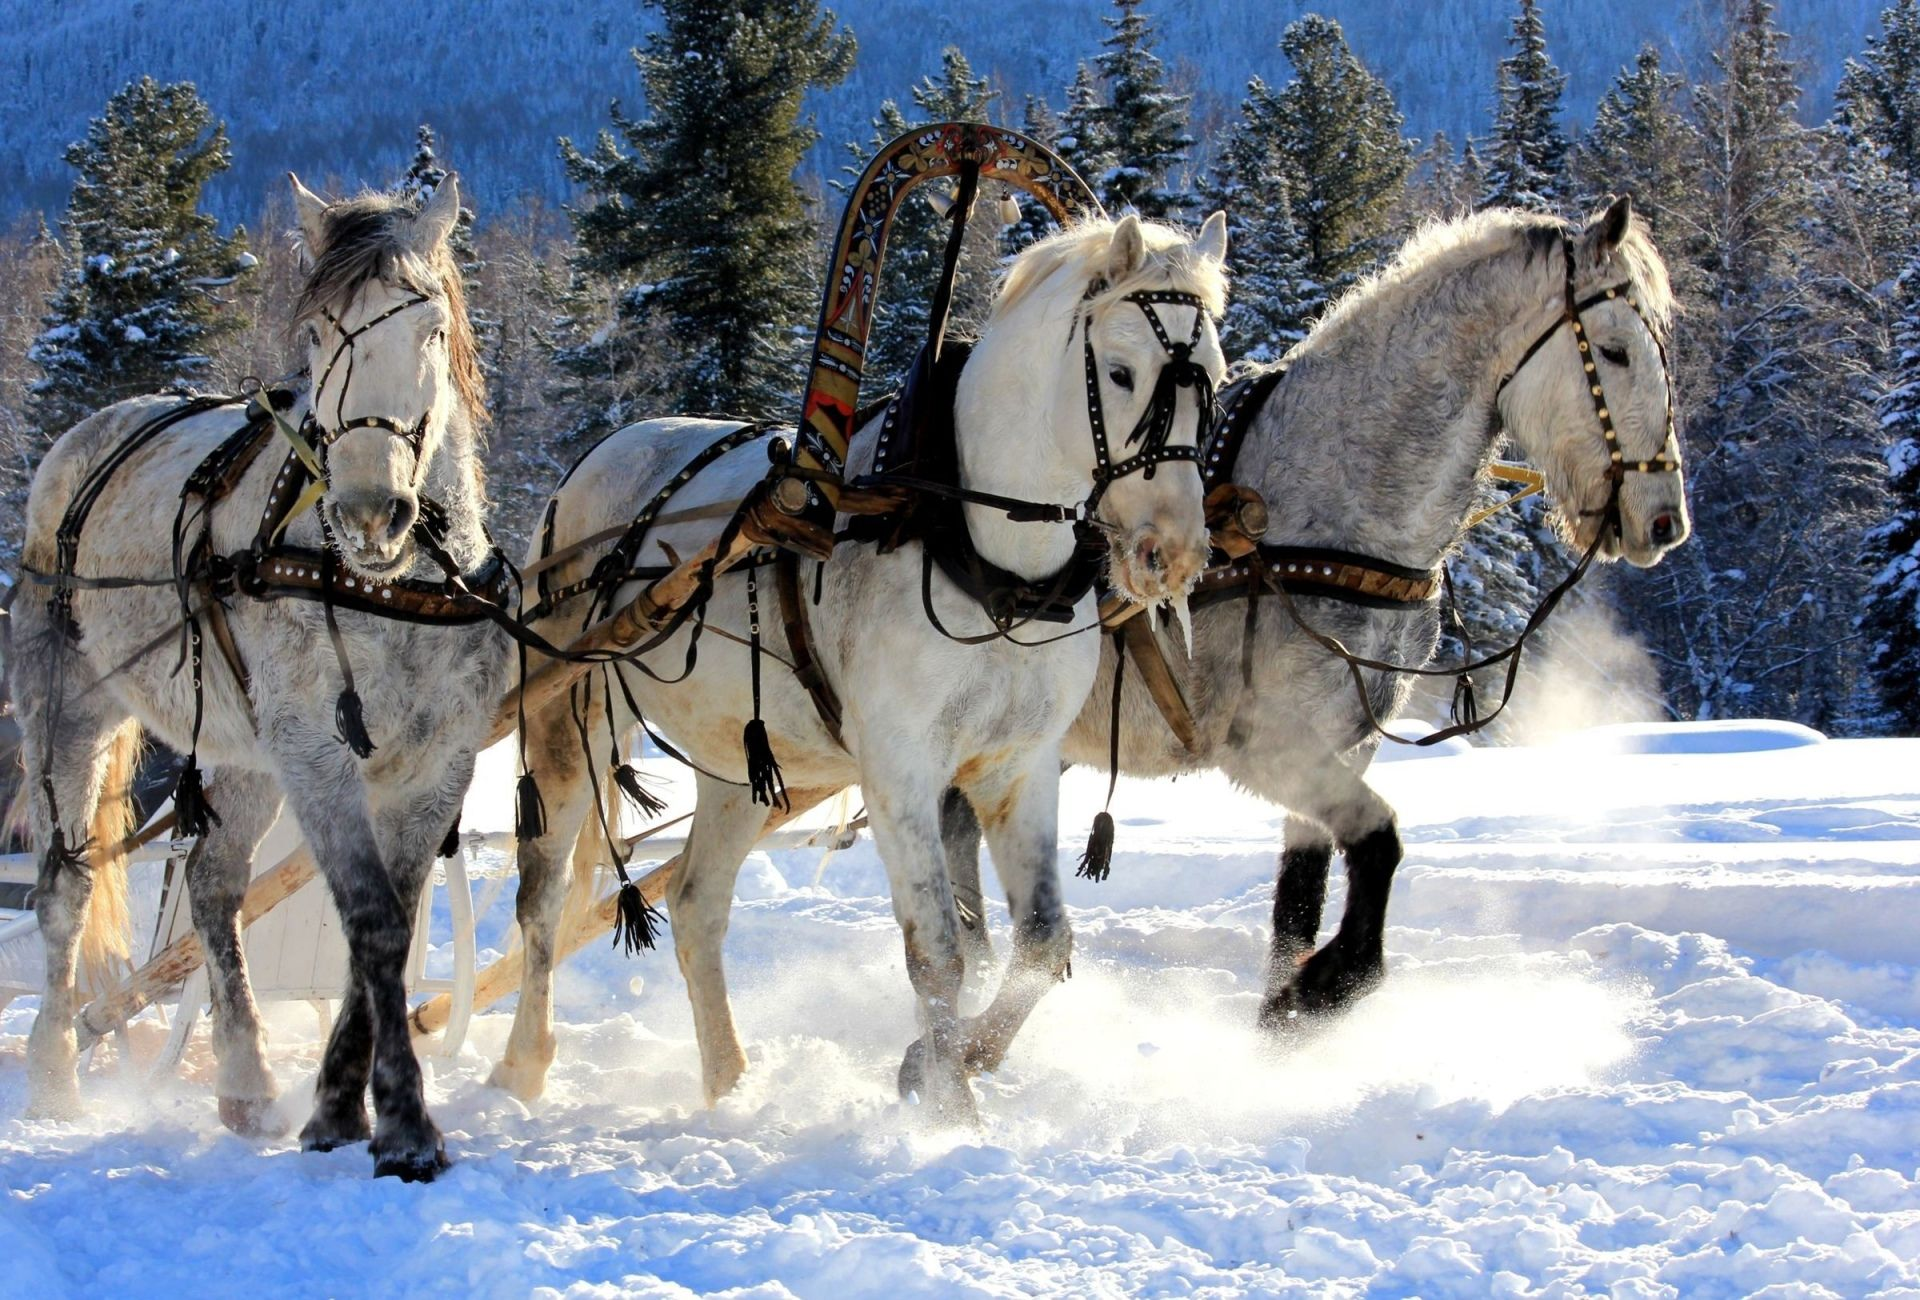 Top Wallpaper Horse Winter - 7c38f8458583d303d6606cea741ca942  Graphic_394274.jpg